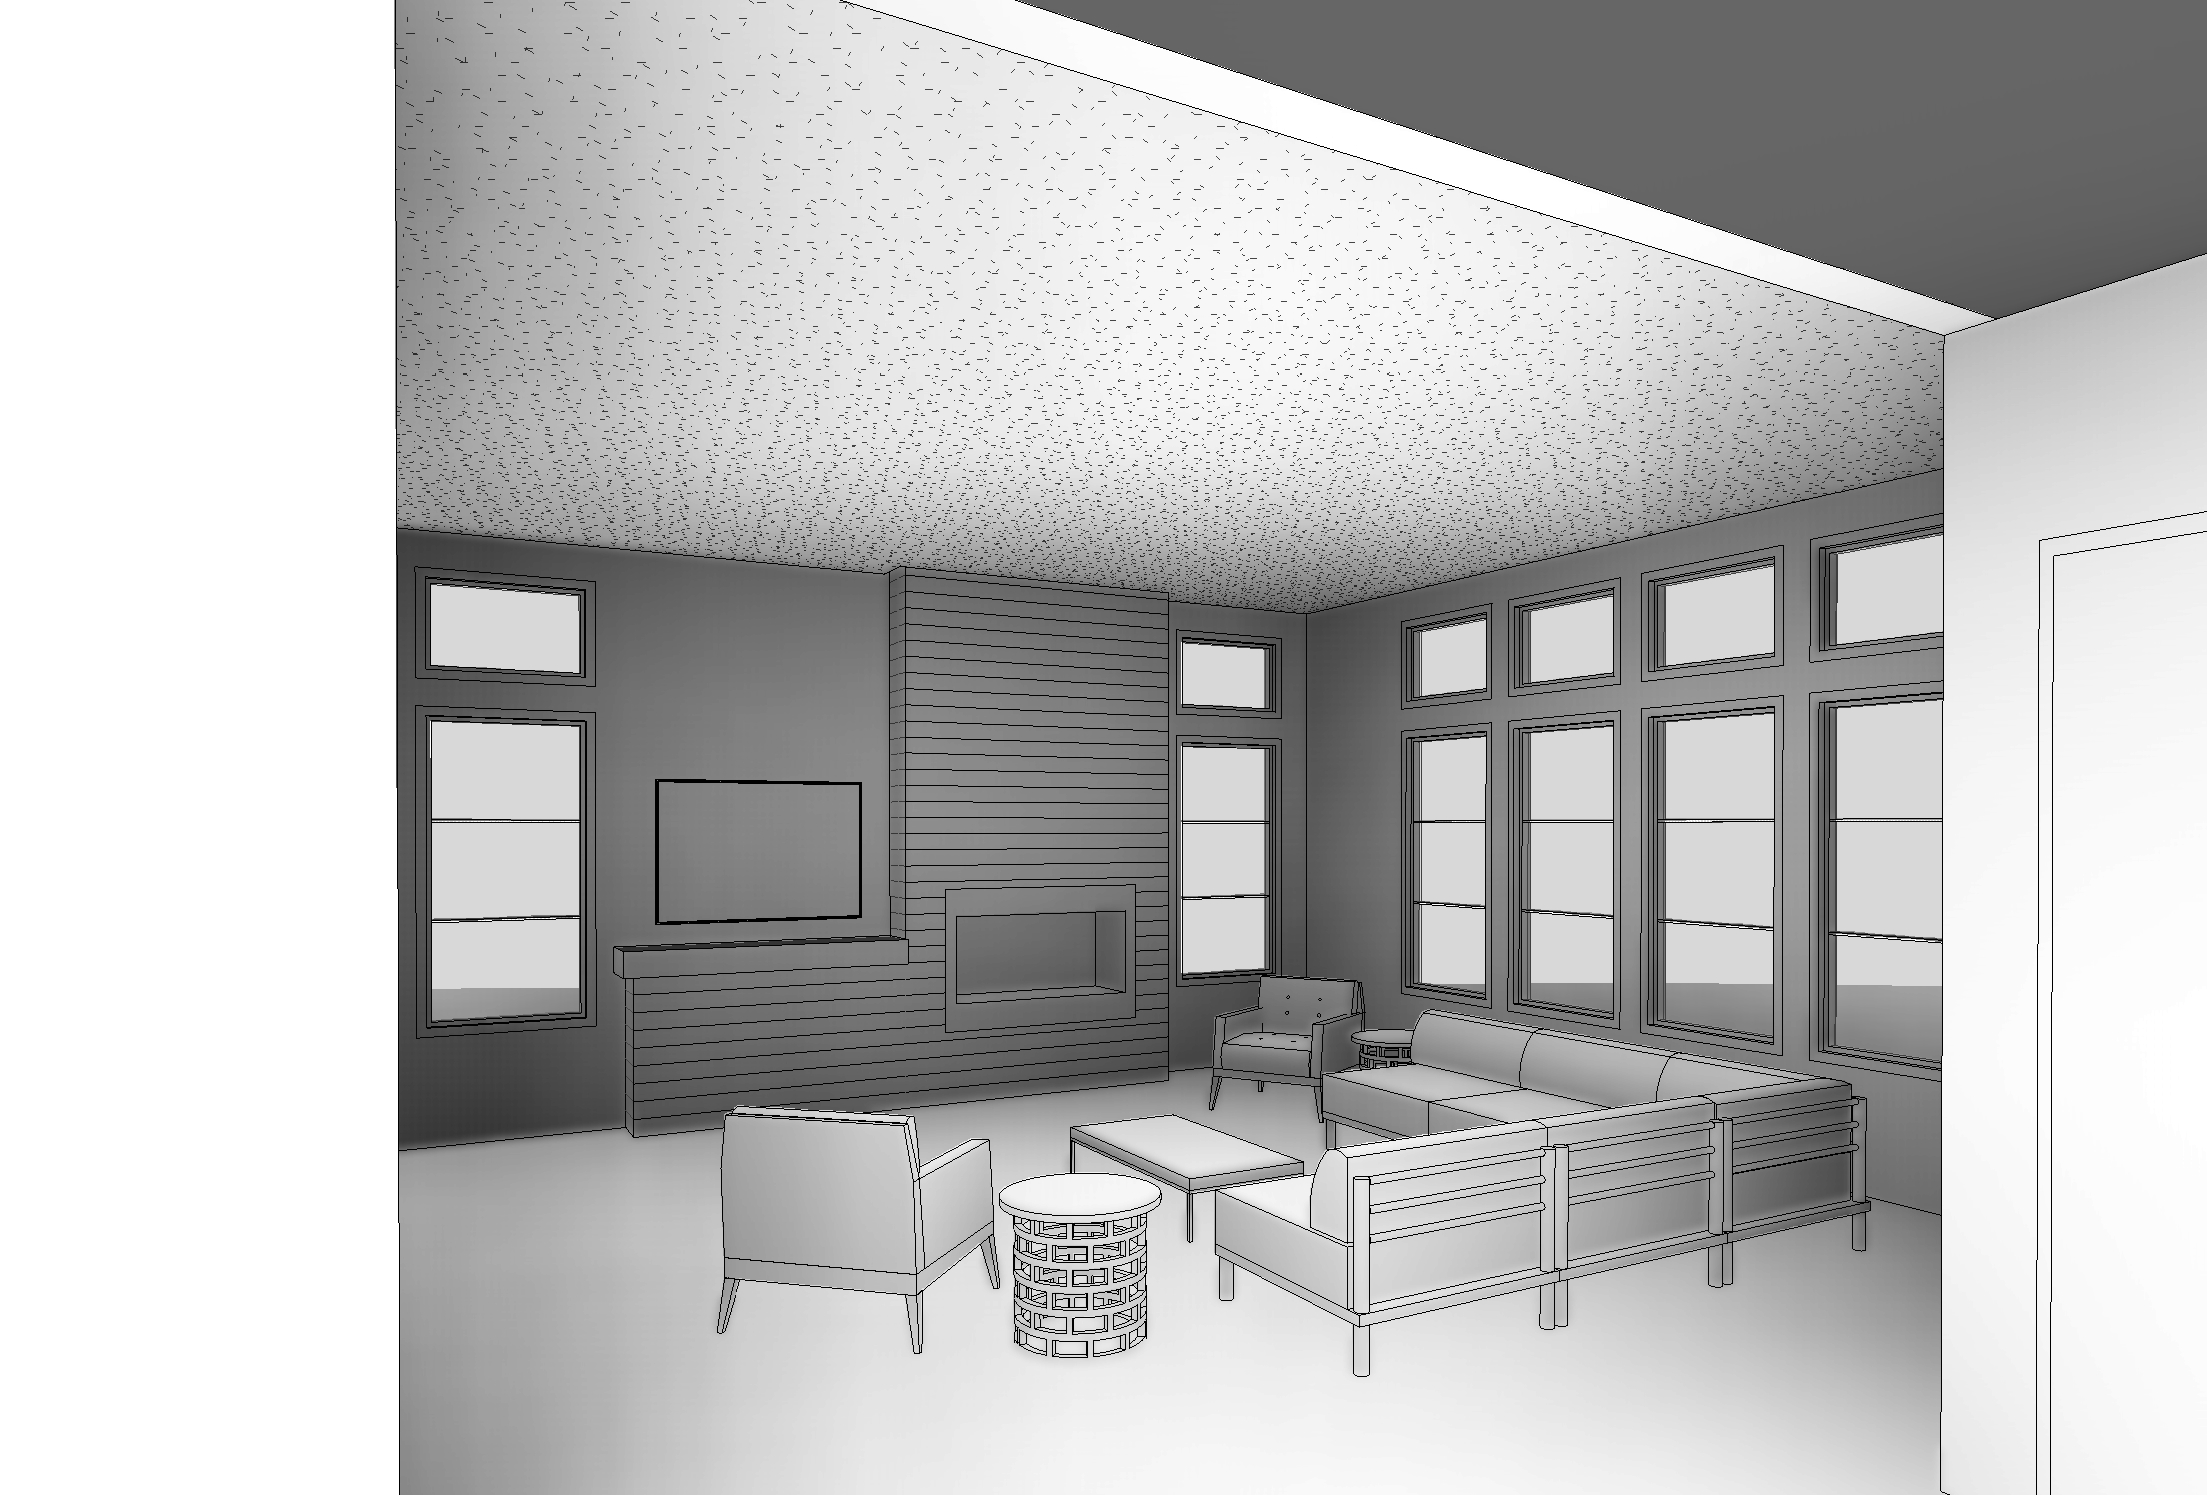 Smoot10 - 3D View - TO GREAT ROOM.jpg